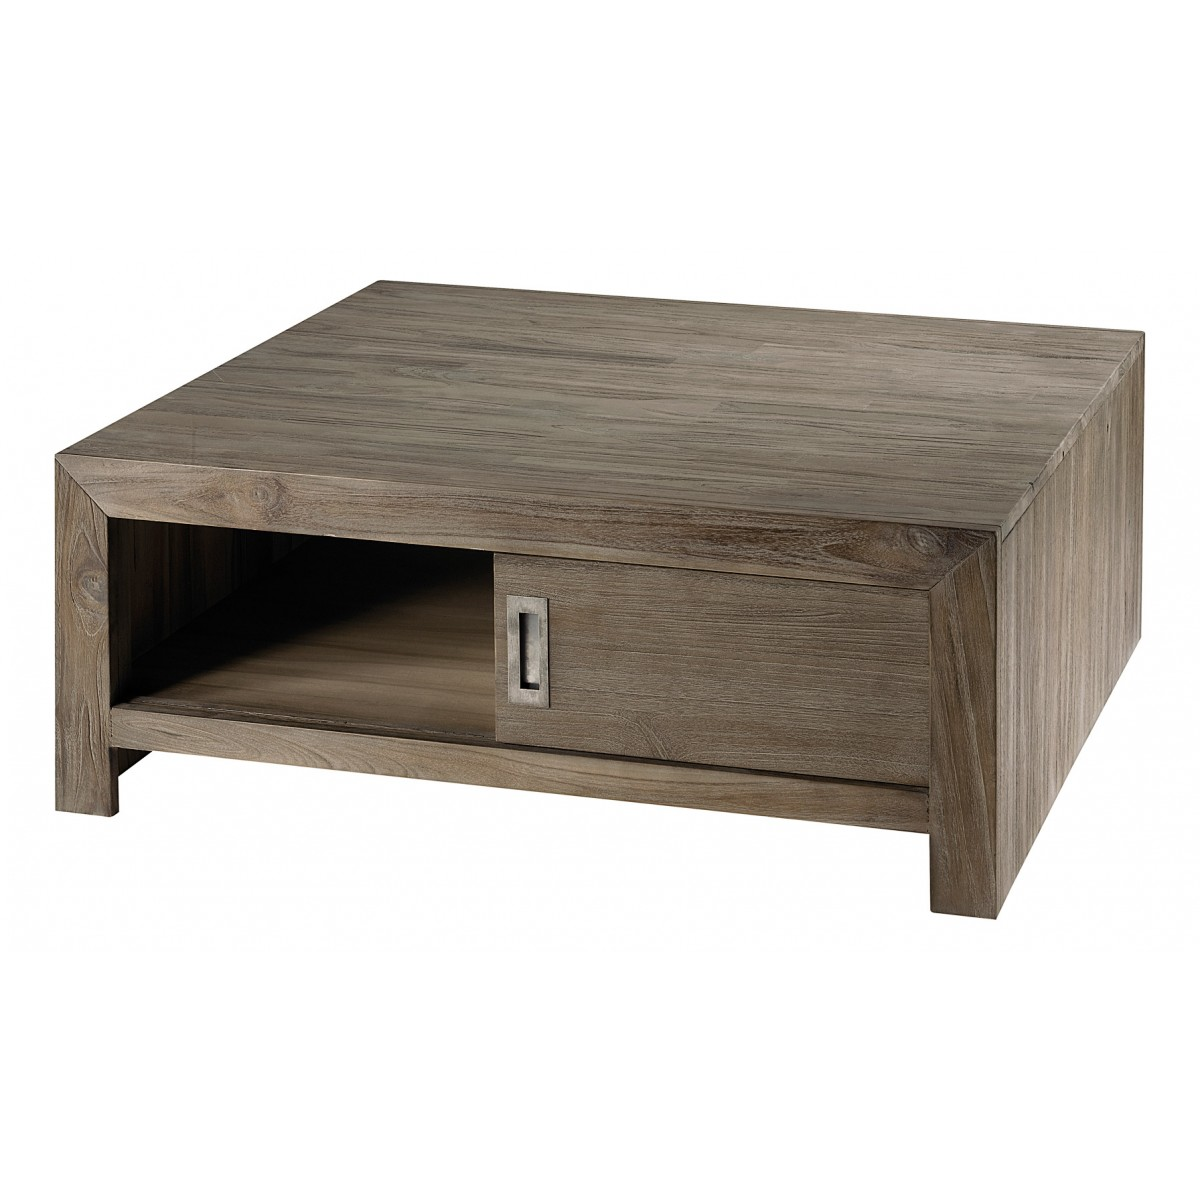 Table basse carr e en teck gris 2 portes cosmos mooviin - Table basse carree grise ...